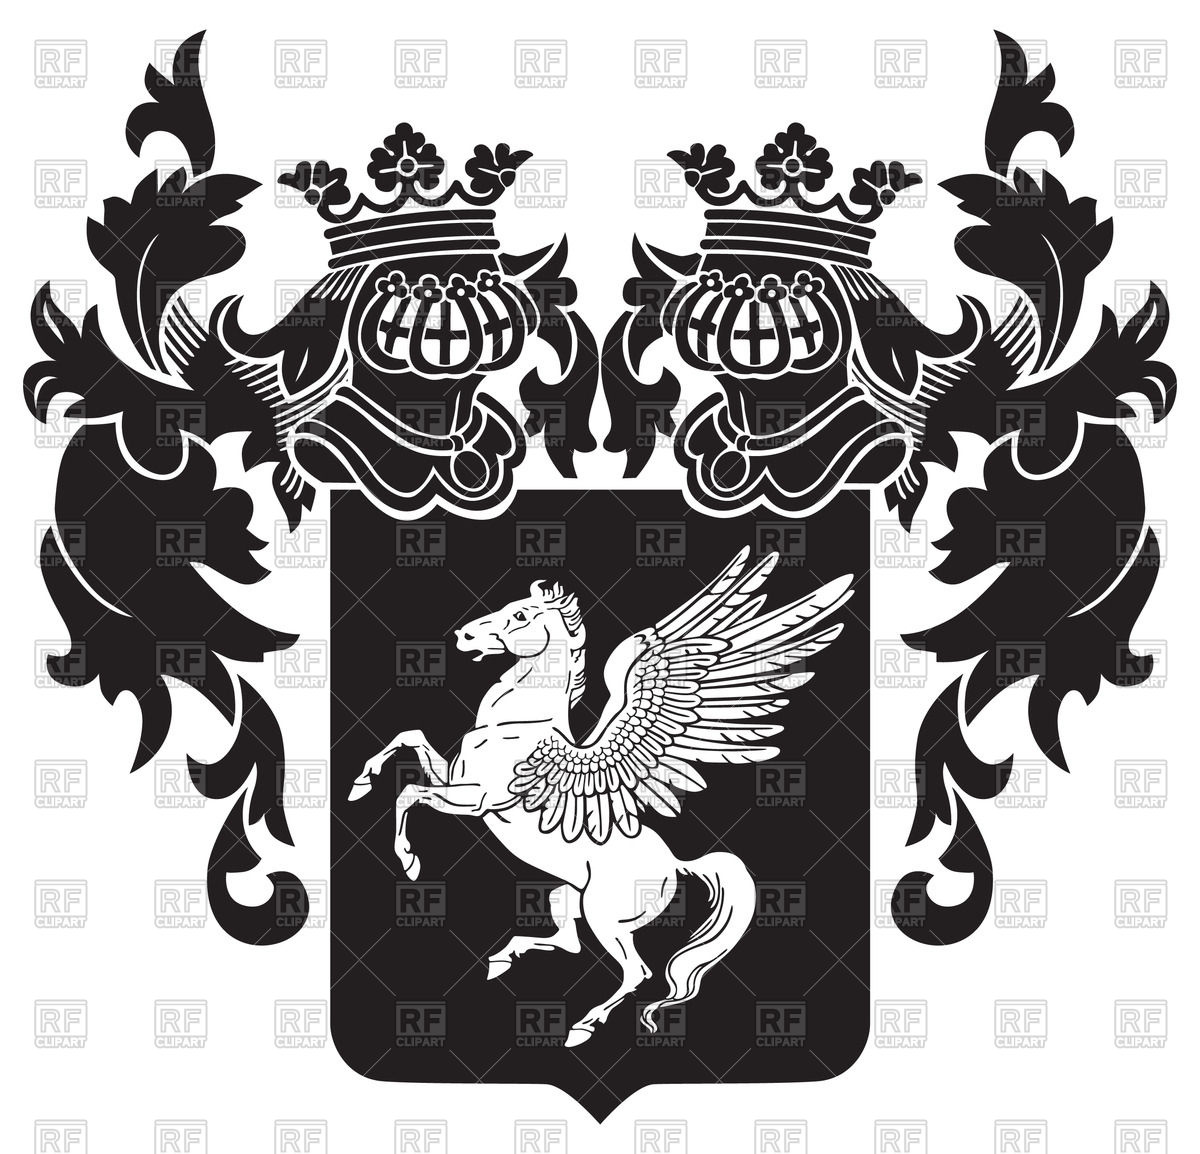 1200x1154 Ornate Heraldic Emblem With Image Of Pegasus On Shield